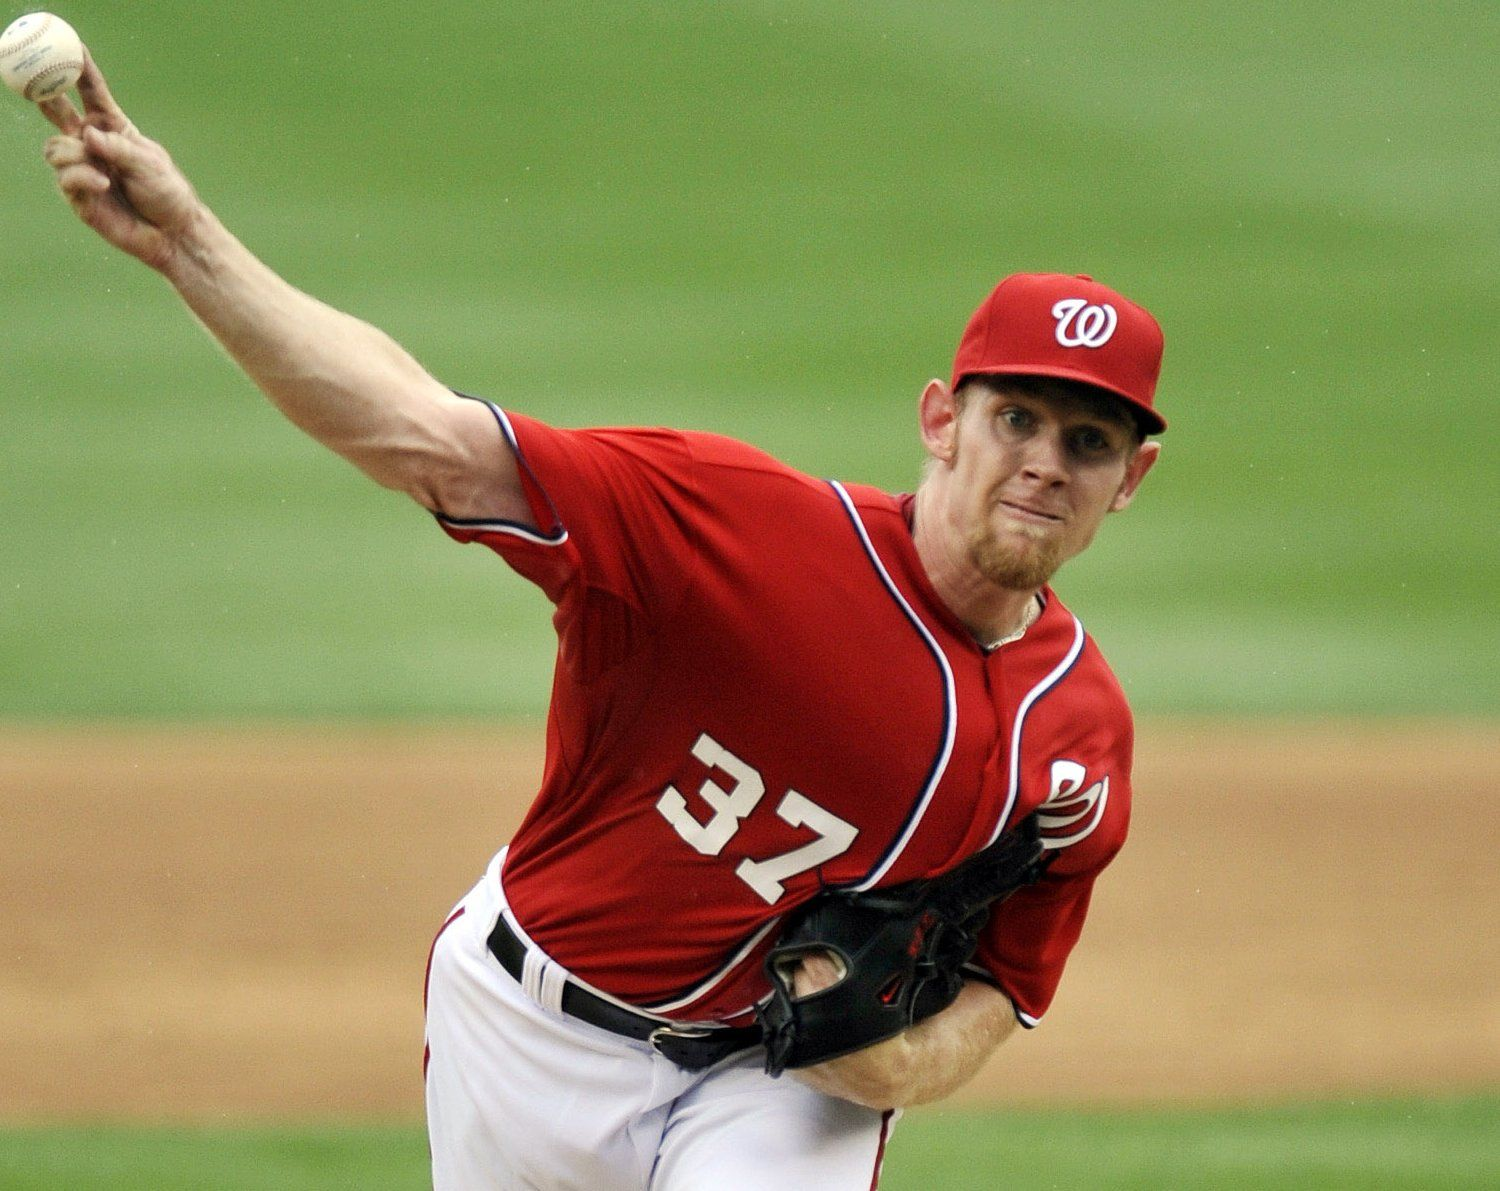 9. Washington Nationals - 2014 Payroll: $128.3 Million